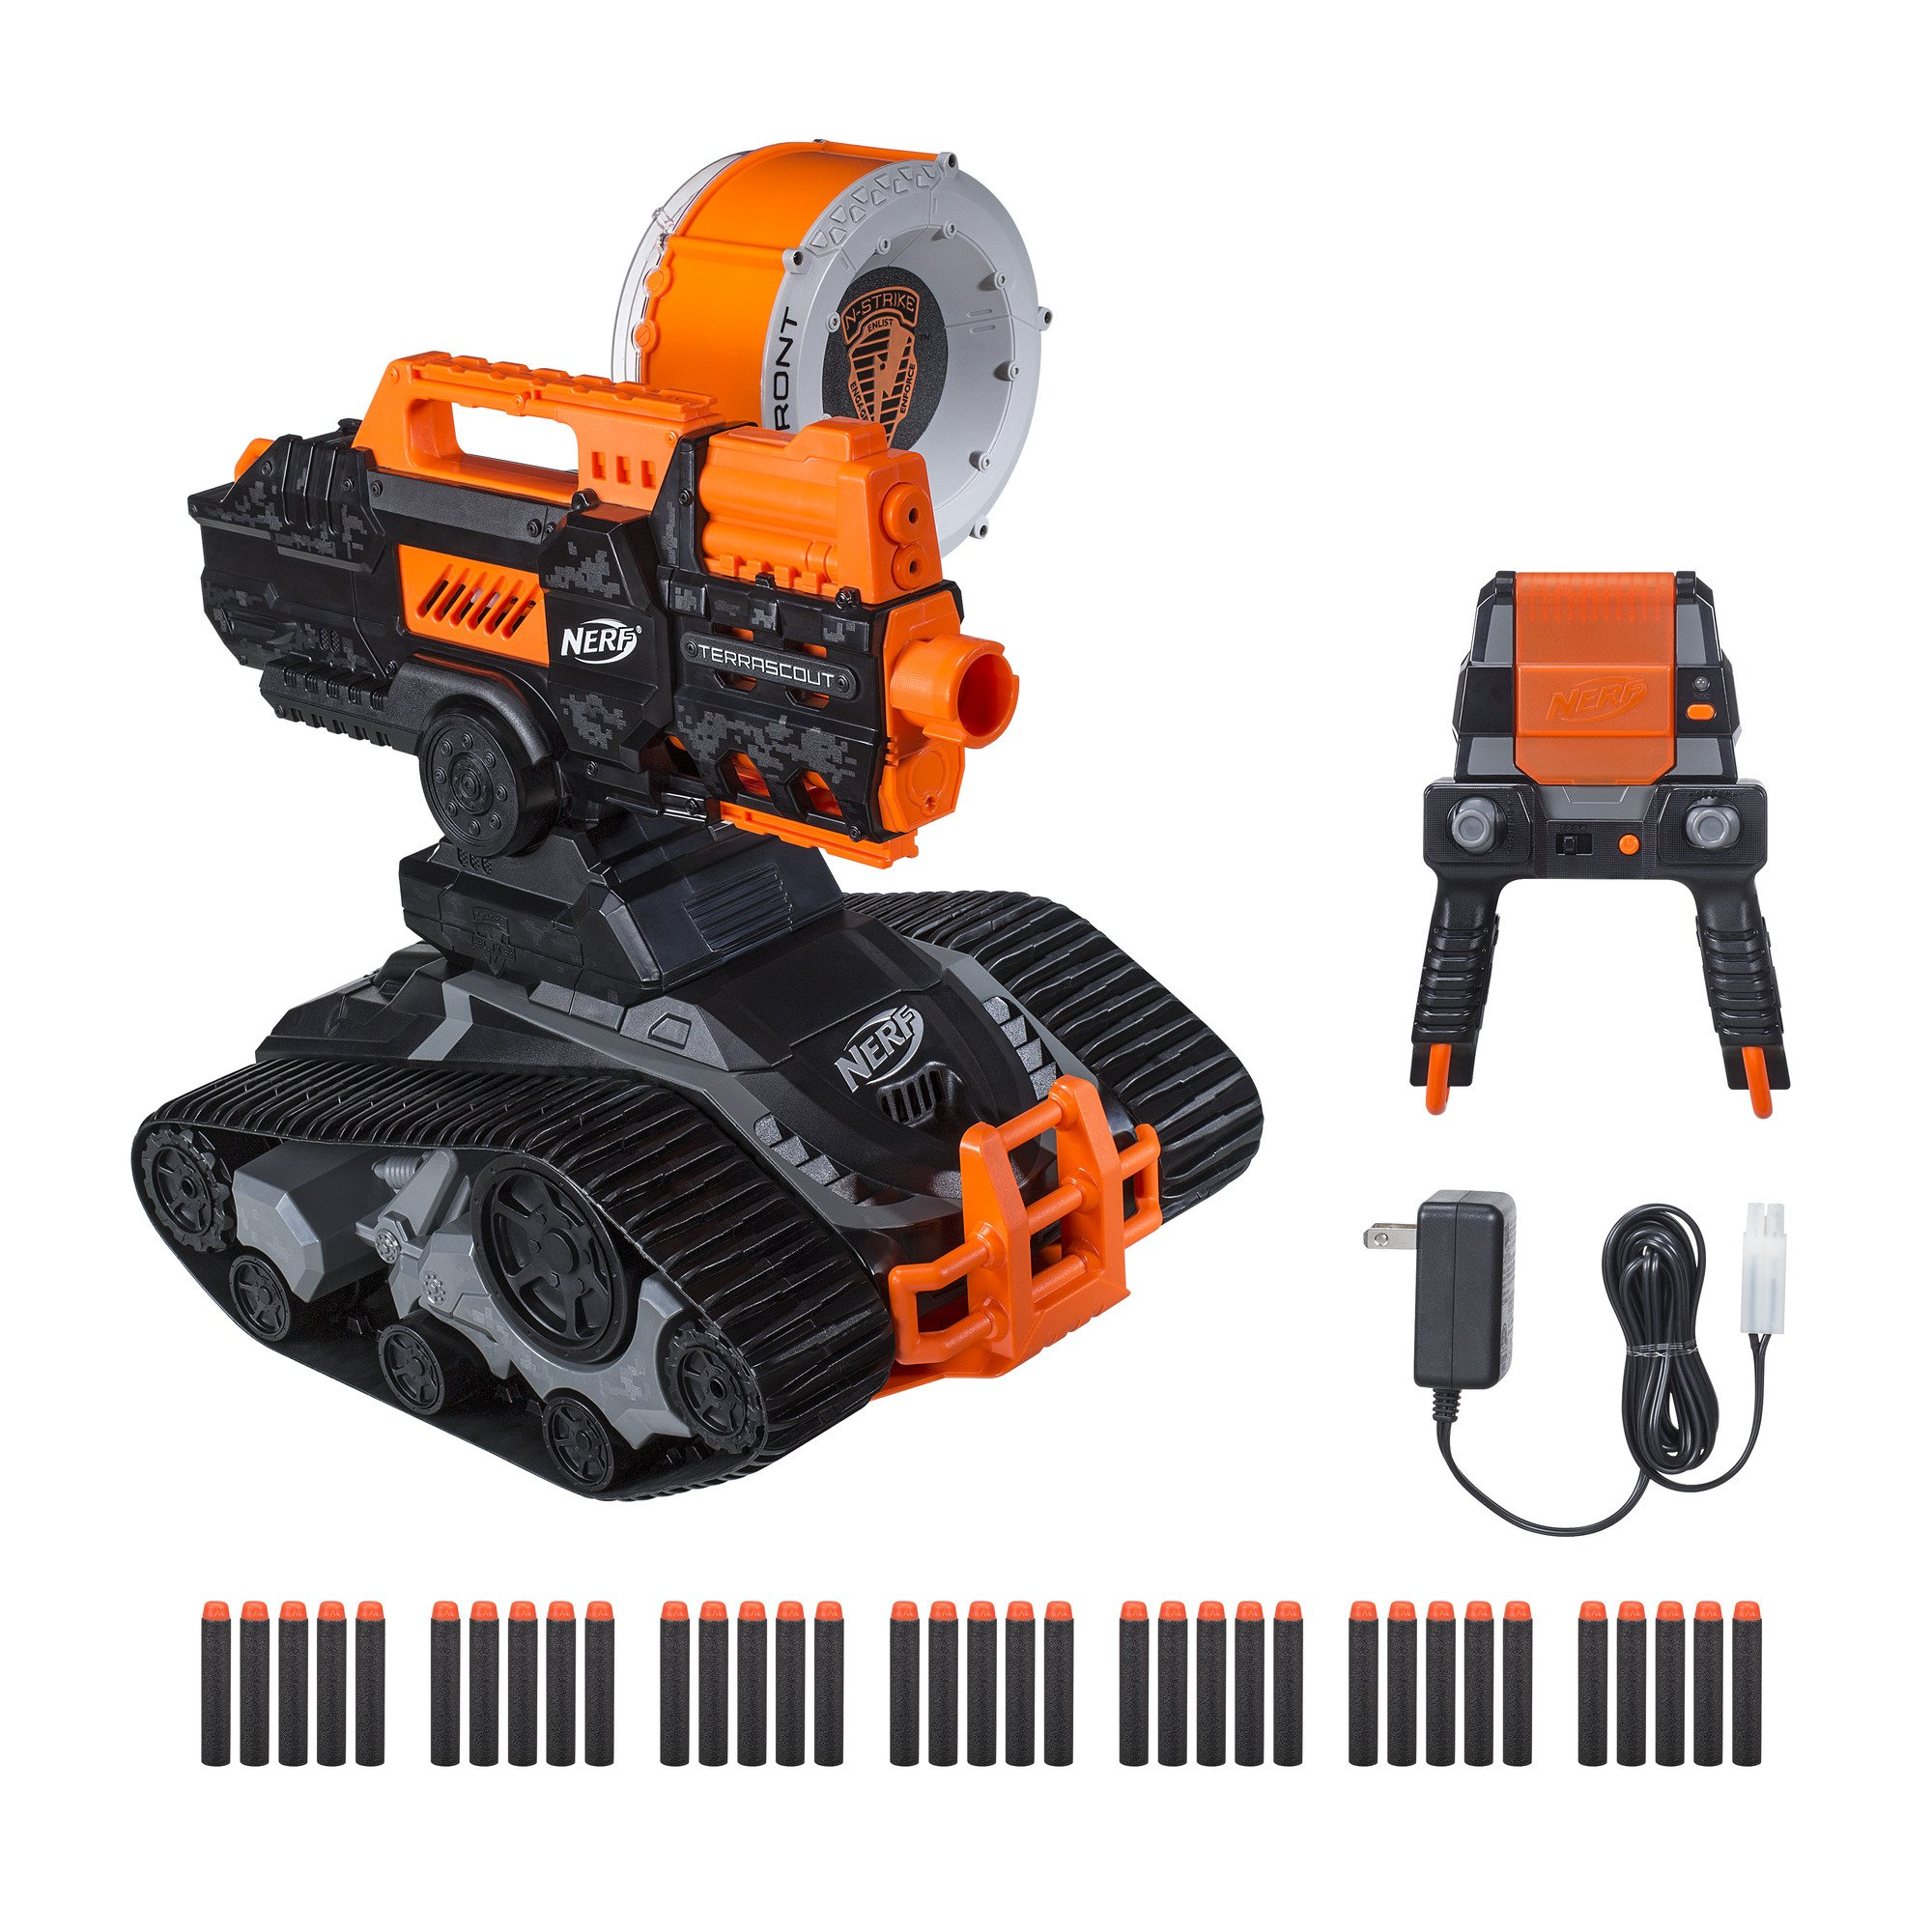 TerraScout Recon Nerf Toy RC Drone N-Strike Elite Blaster with Live Video Feed 18 Official Nerf Elite Darts and Rechargeable Battery For Kids, Teens, and Adults by NERF (Image #1)